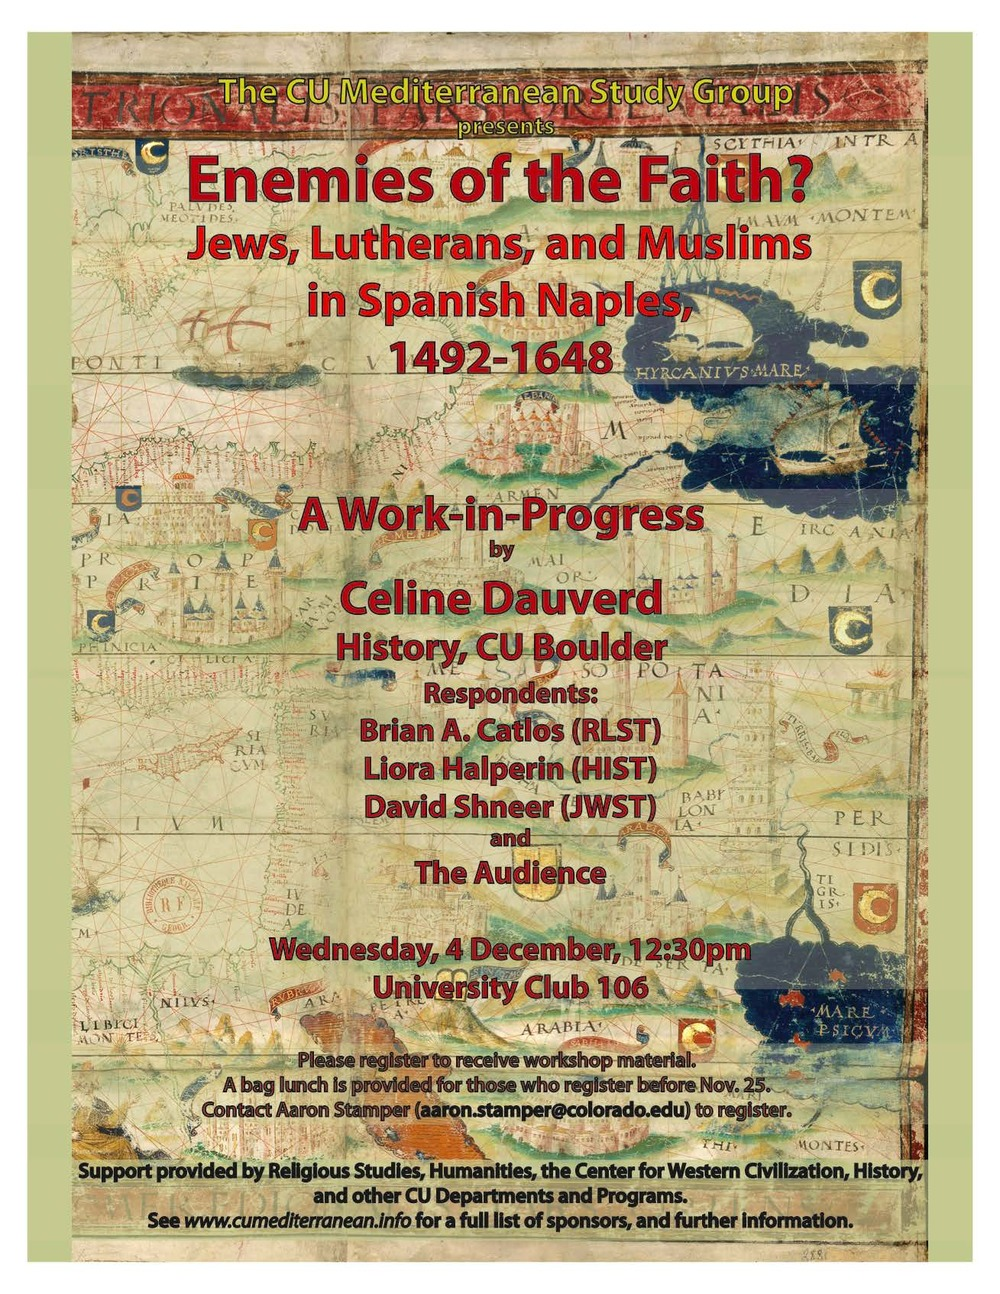 cu mediterranean studies group the mediterranean seminar wednesday 4 celine dauverd history cu boulder enemies of the faith jews lutherans and muslims in spanish genoa 1492 1648 bull respondents